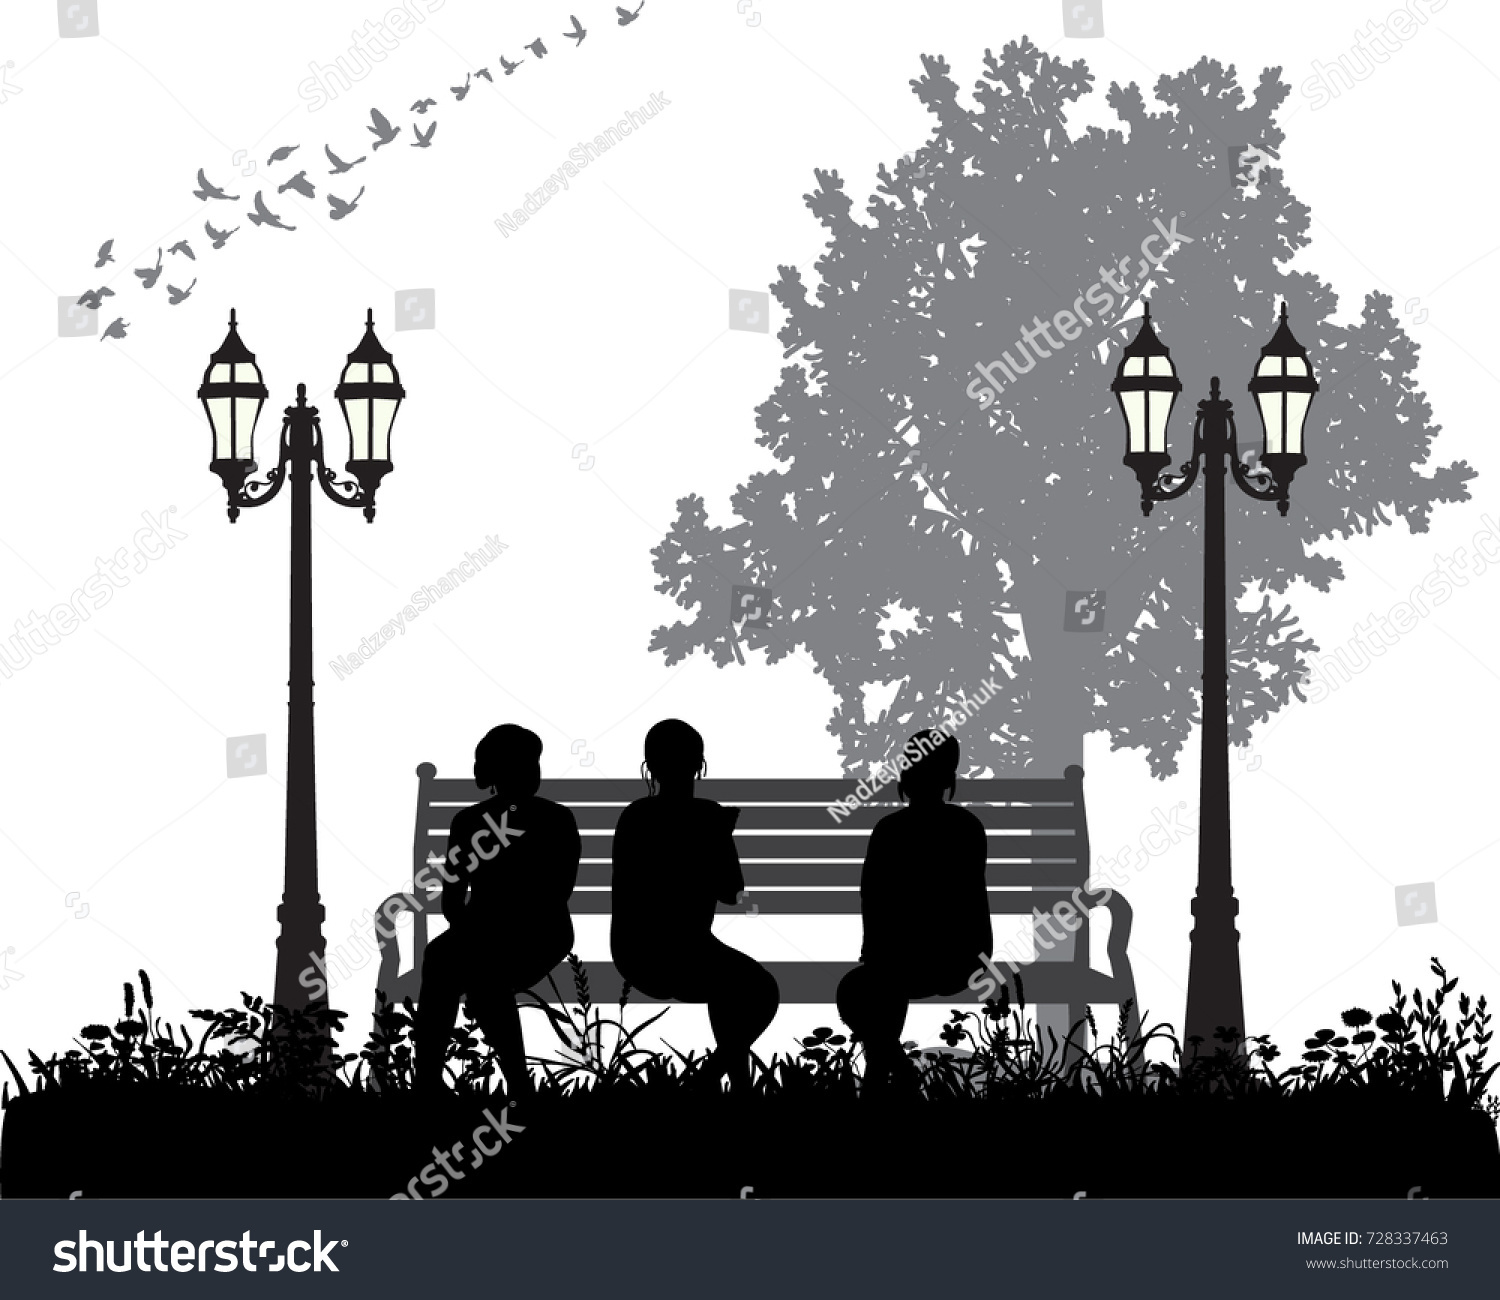 Silhouette People Sitting On Bench Stock Vector 728337463 ... for People On Bench Silhouette  575lpg